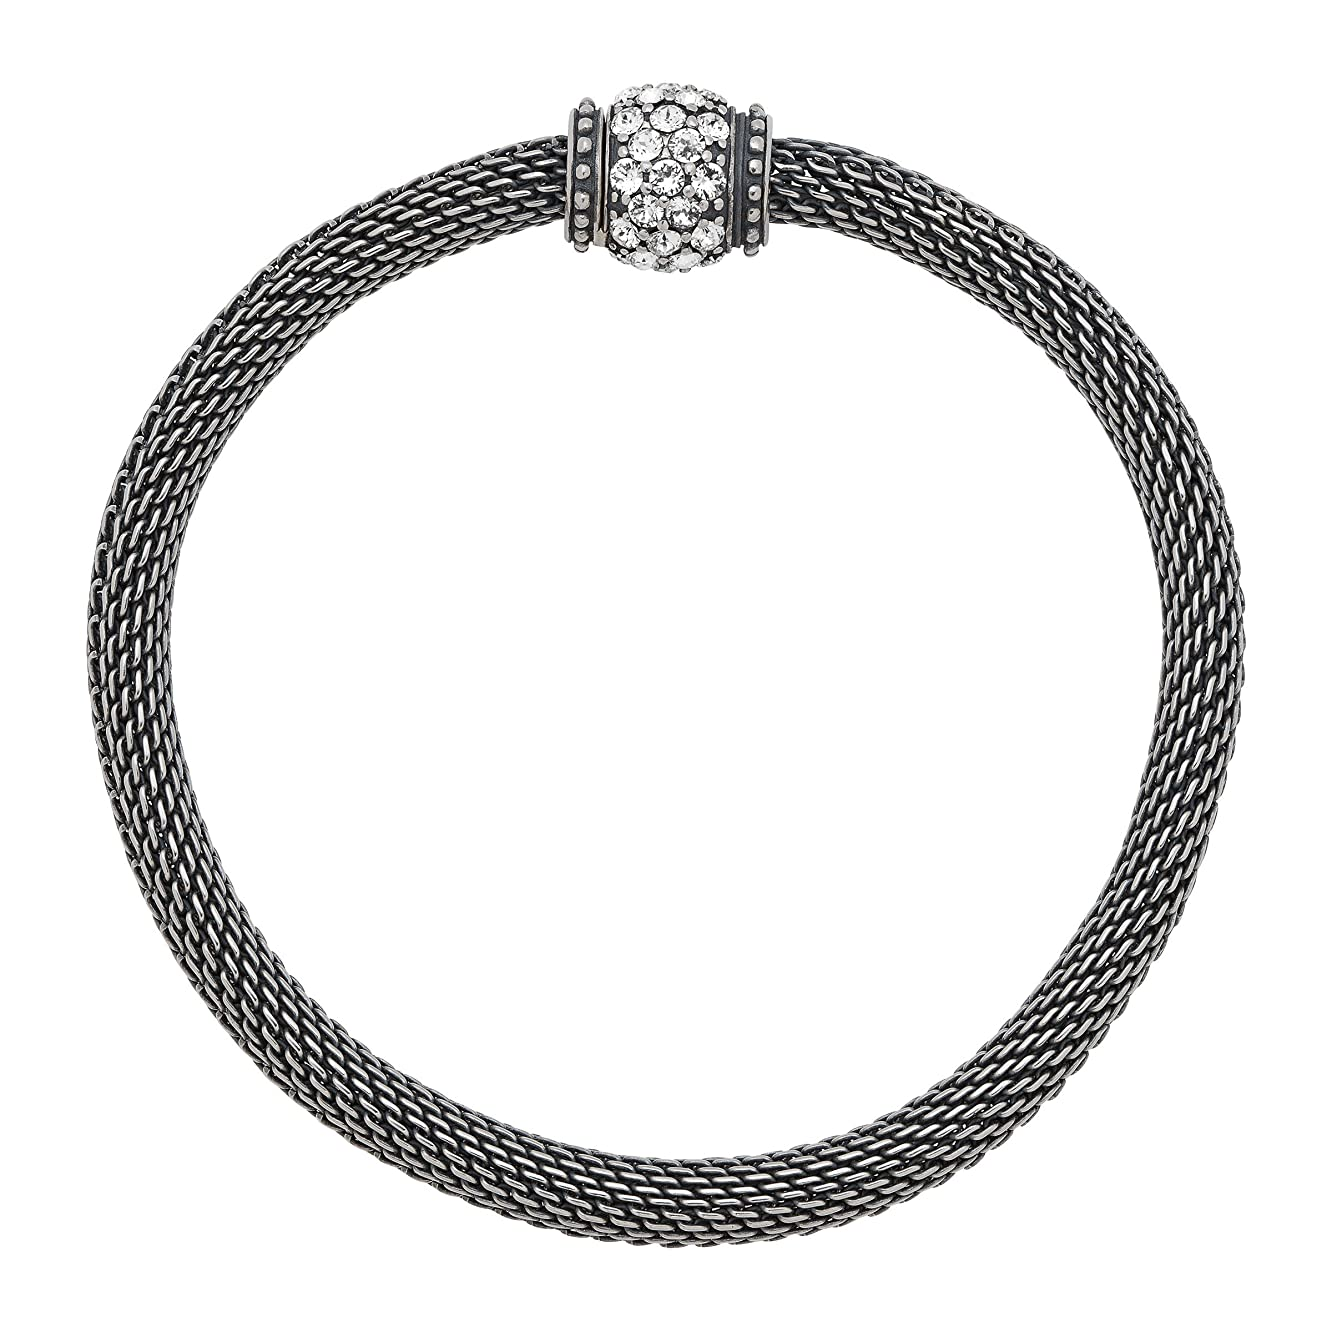 Silpada 'Mesh Together' Bead Stretch Chain Bracelet with Swarovski Crystals in Sterling Silver, 7